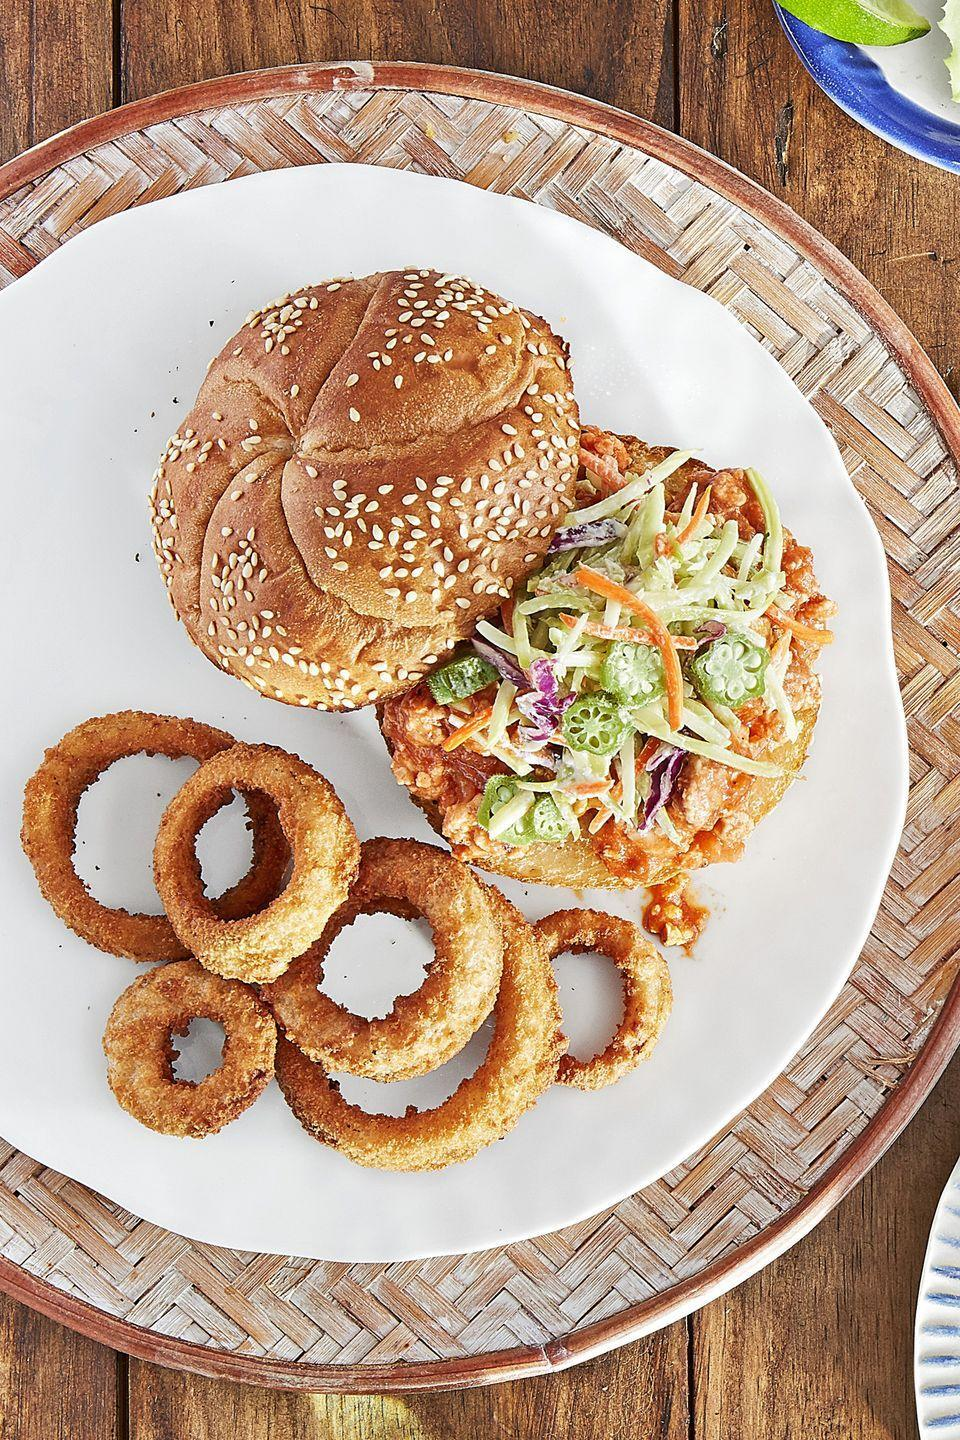 "<p>Crispy onions rings and a homemade pickled slaw bring some crunch to your favorite sloppy joes.</p><p><strong><a href=""https://www.countryliving.com/food-drinks/recipes/a44280/sloppy-joes-pickled-okra-slaw-recipe/"" rel=""nofollow noopener"" target=""_blank"" data-ylk=""slk:Get the recipe"" class=""link rapid-noclick-resp"">Get the recipe</a>.</strong></p>"